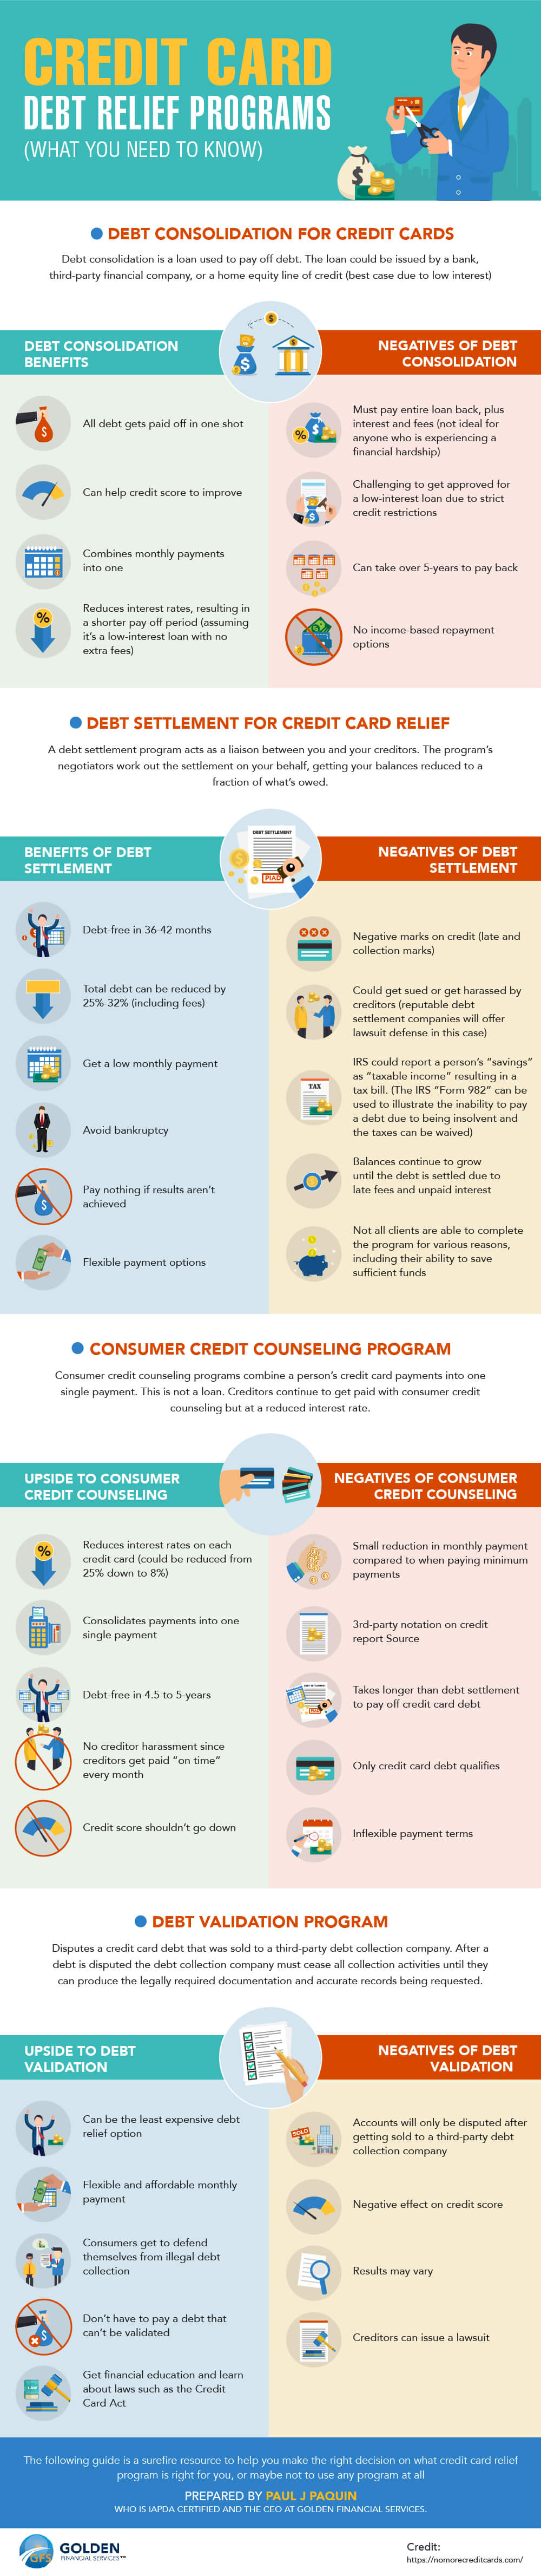 Credit-Card-Debt-Relief-Programs-Summary-infographic-plaza